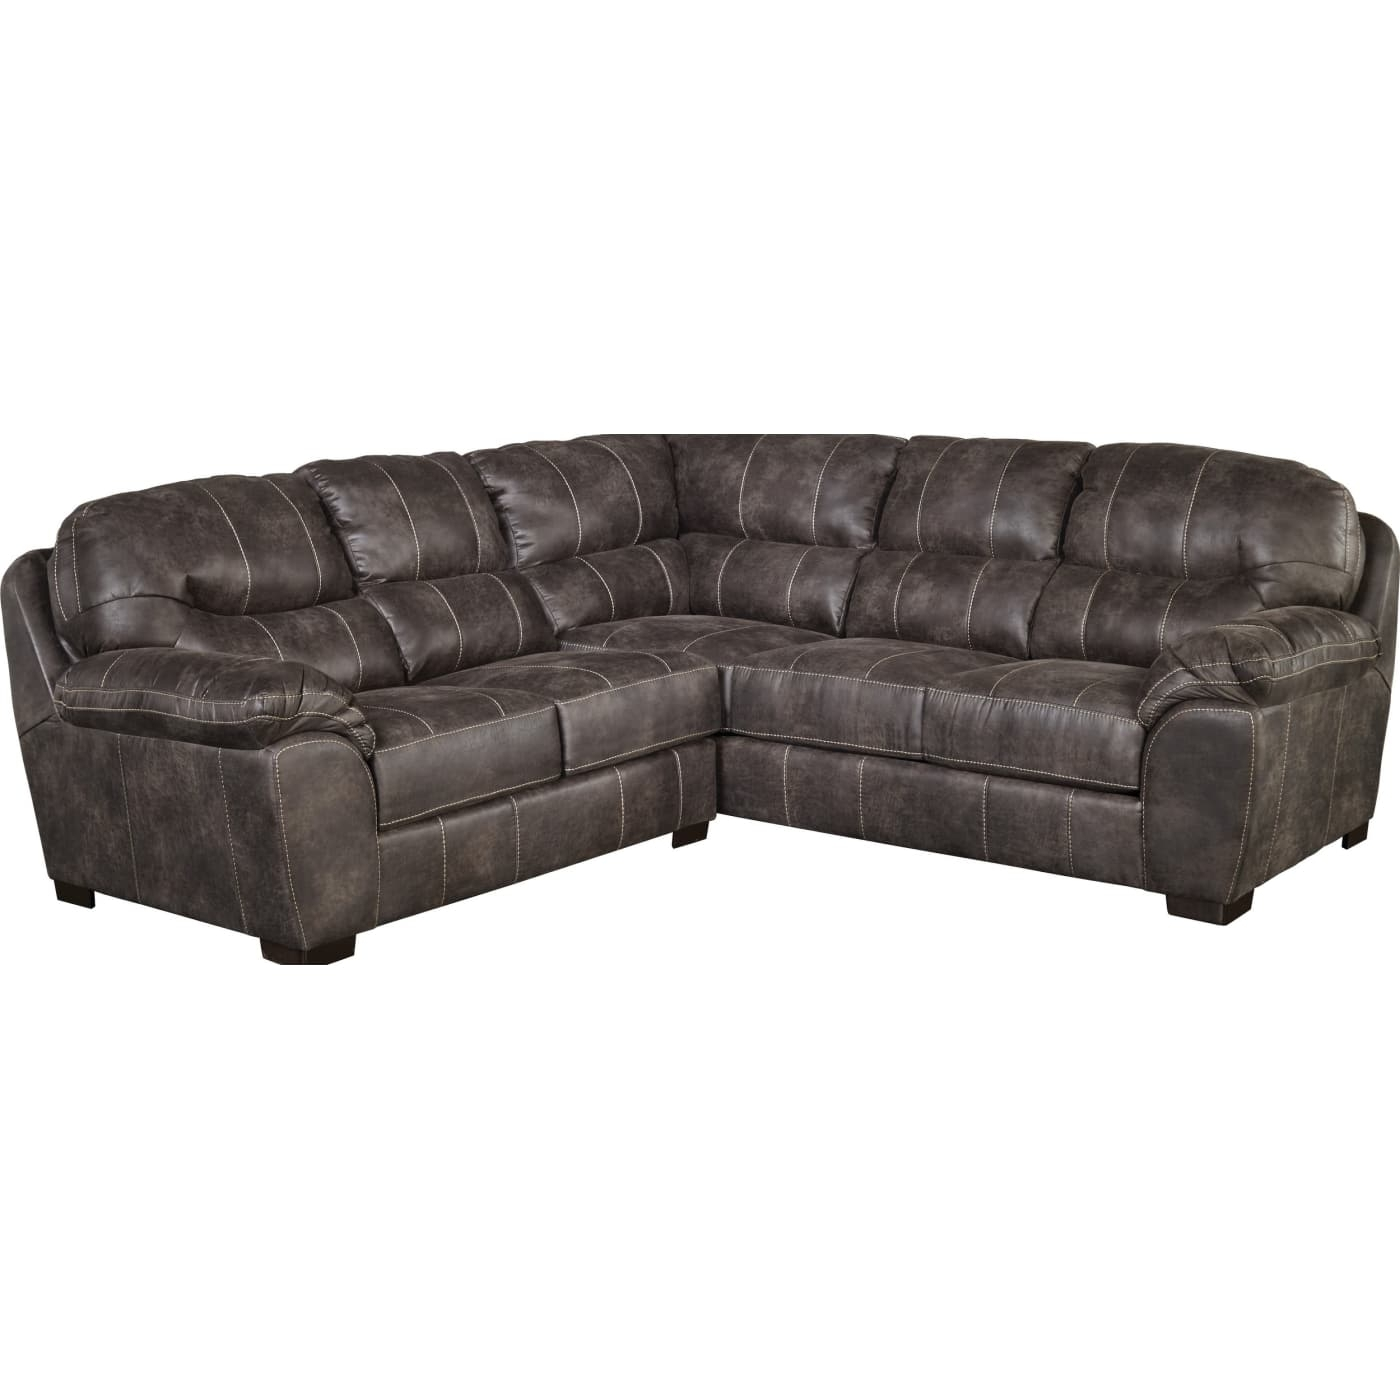 Jackson Grant Steel 2-Piece Sectional Sofa & Reviews - Goedekers inside Jackson 6 Piece Power Reclining Sectionals With  Sleeper (Image 12 of 30)